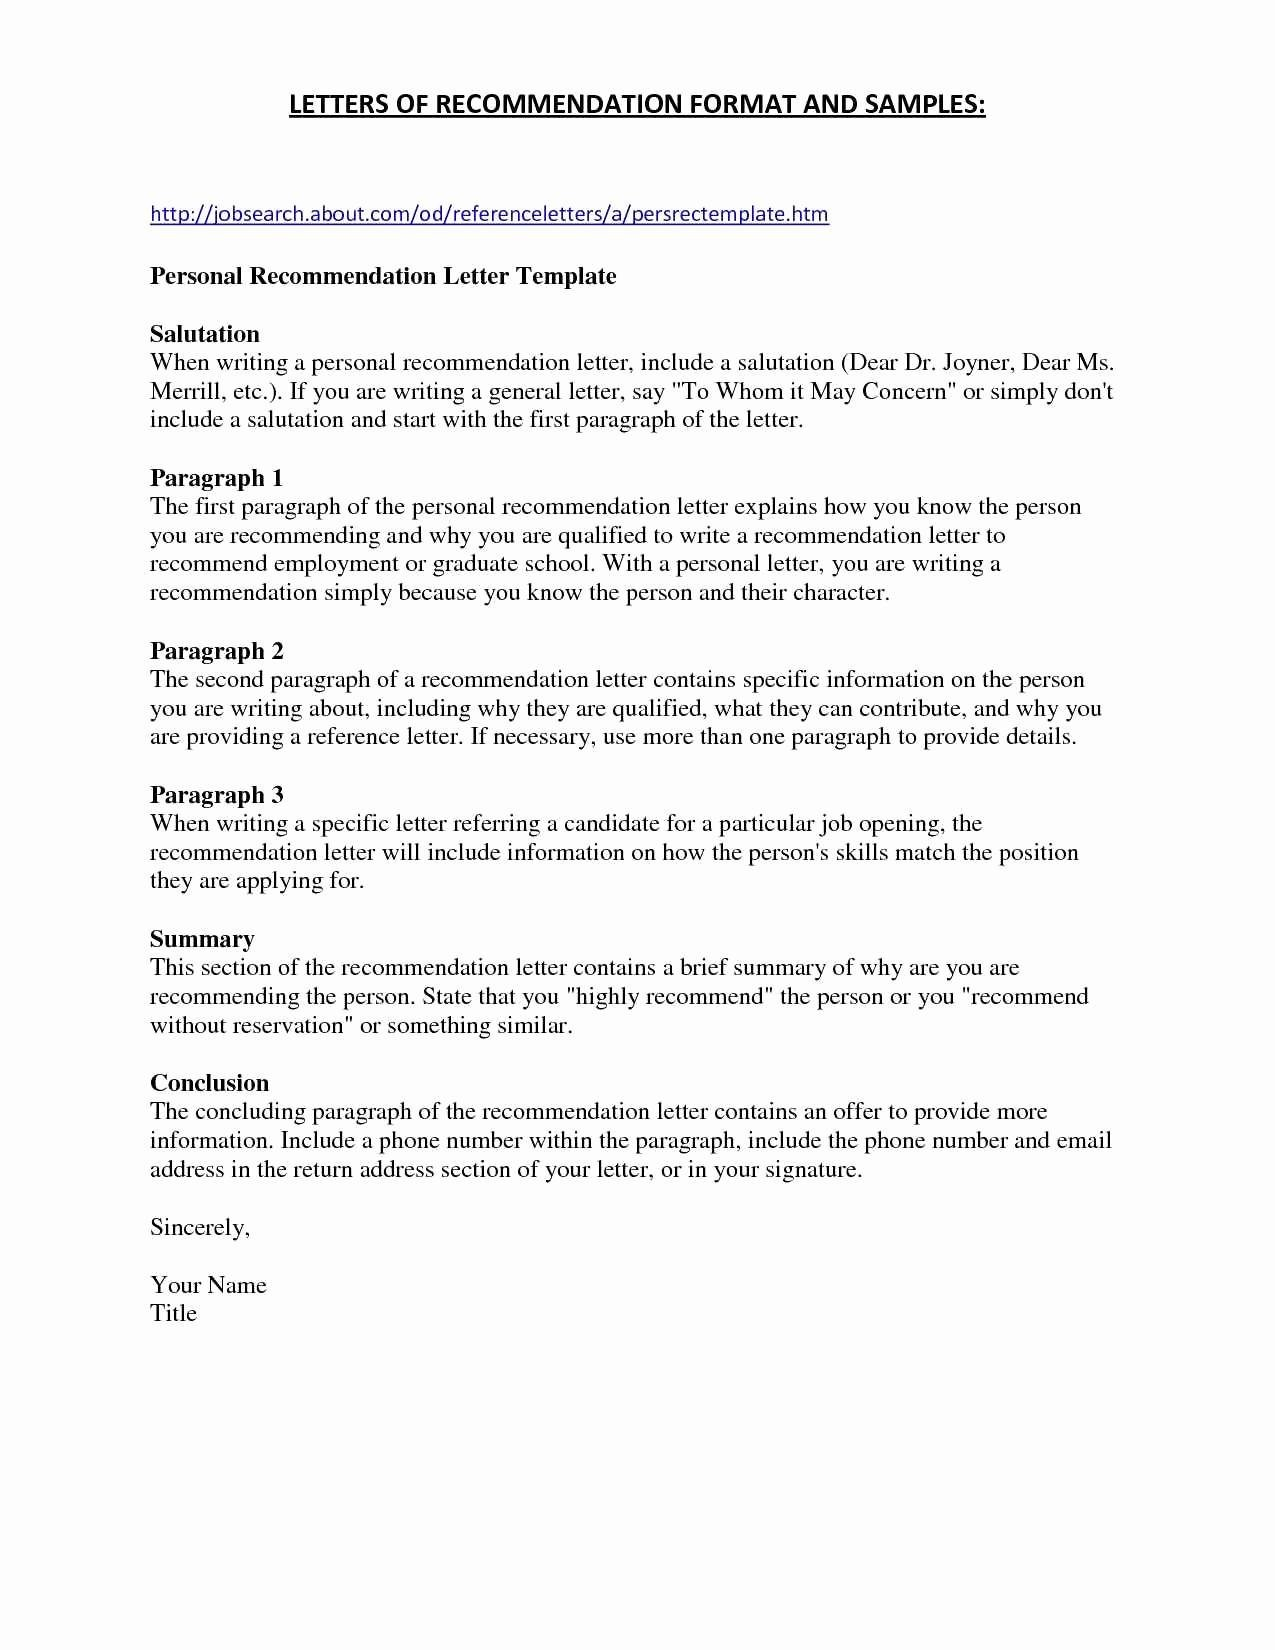 employment verification letter template microsoft Collection-Cover Letter to Consultant for Job Best New Job Fer Letter Template Us Copy Od Consultant 6-d